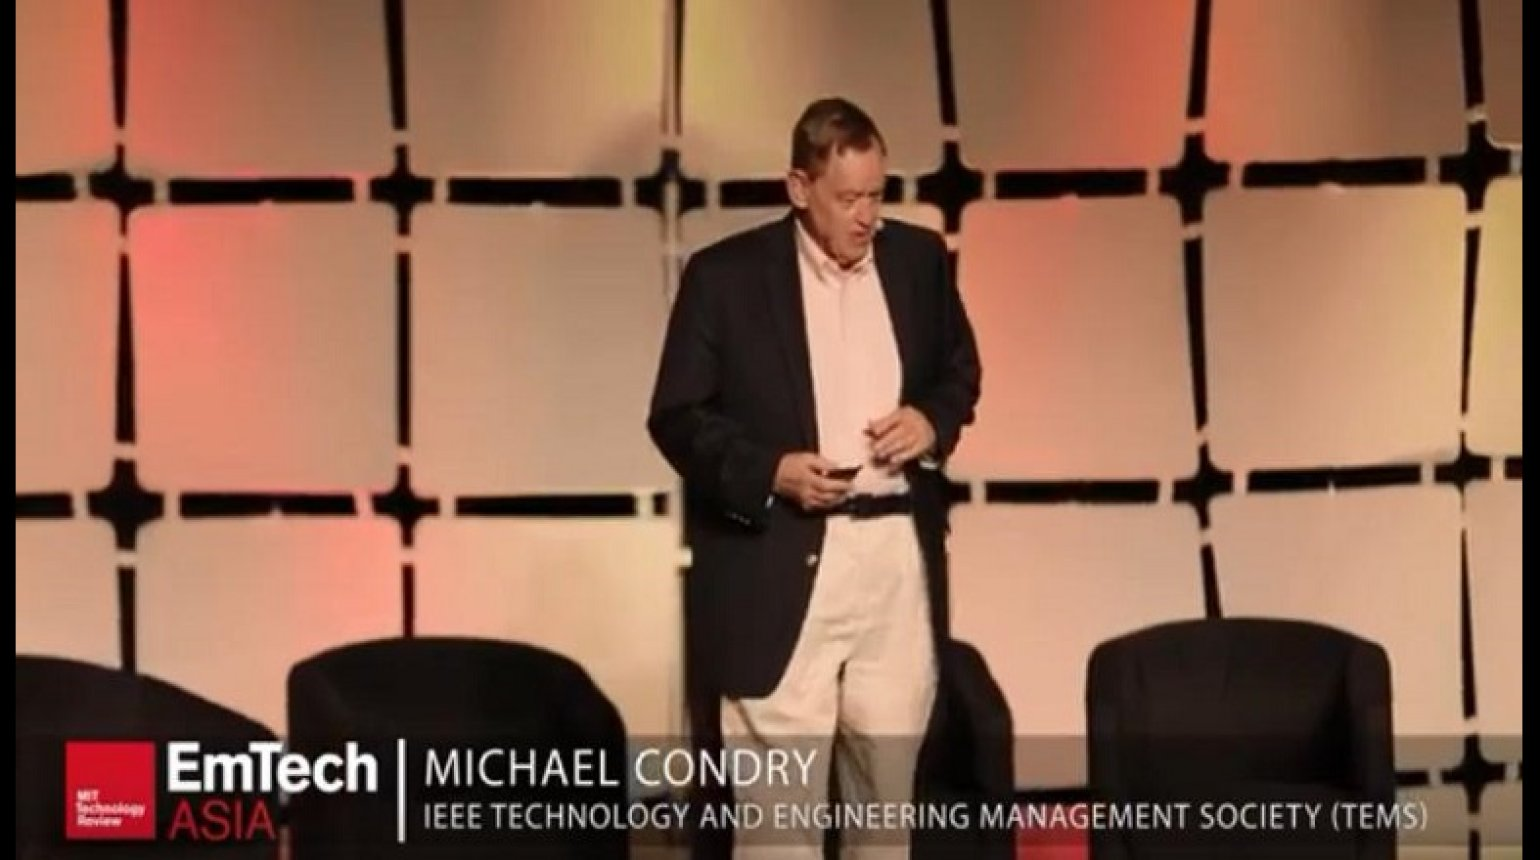 1.21 Growing in a Corporate Environment- Management or Technology Ladder-Michael Condry